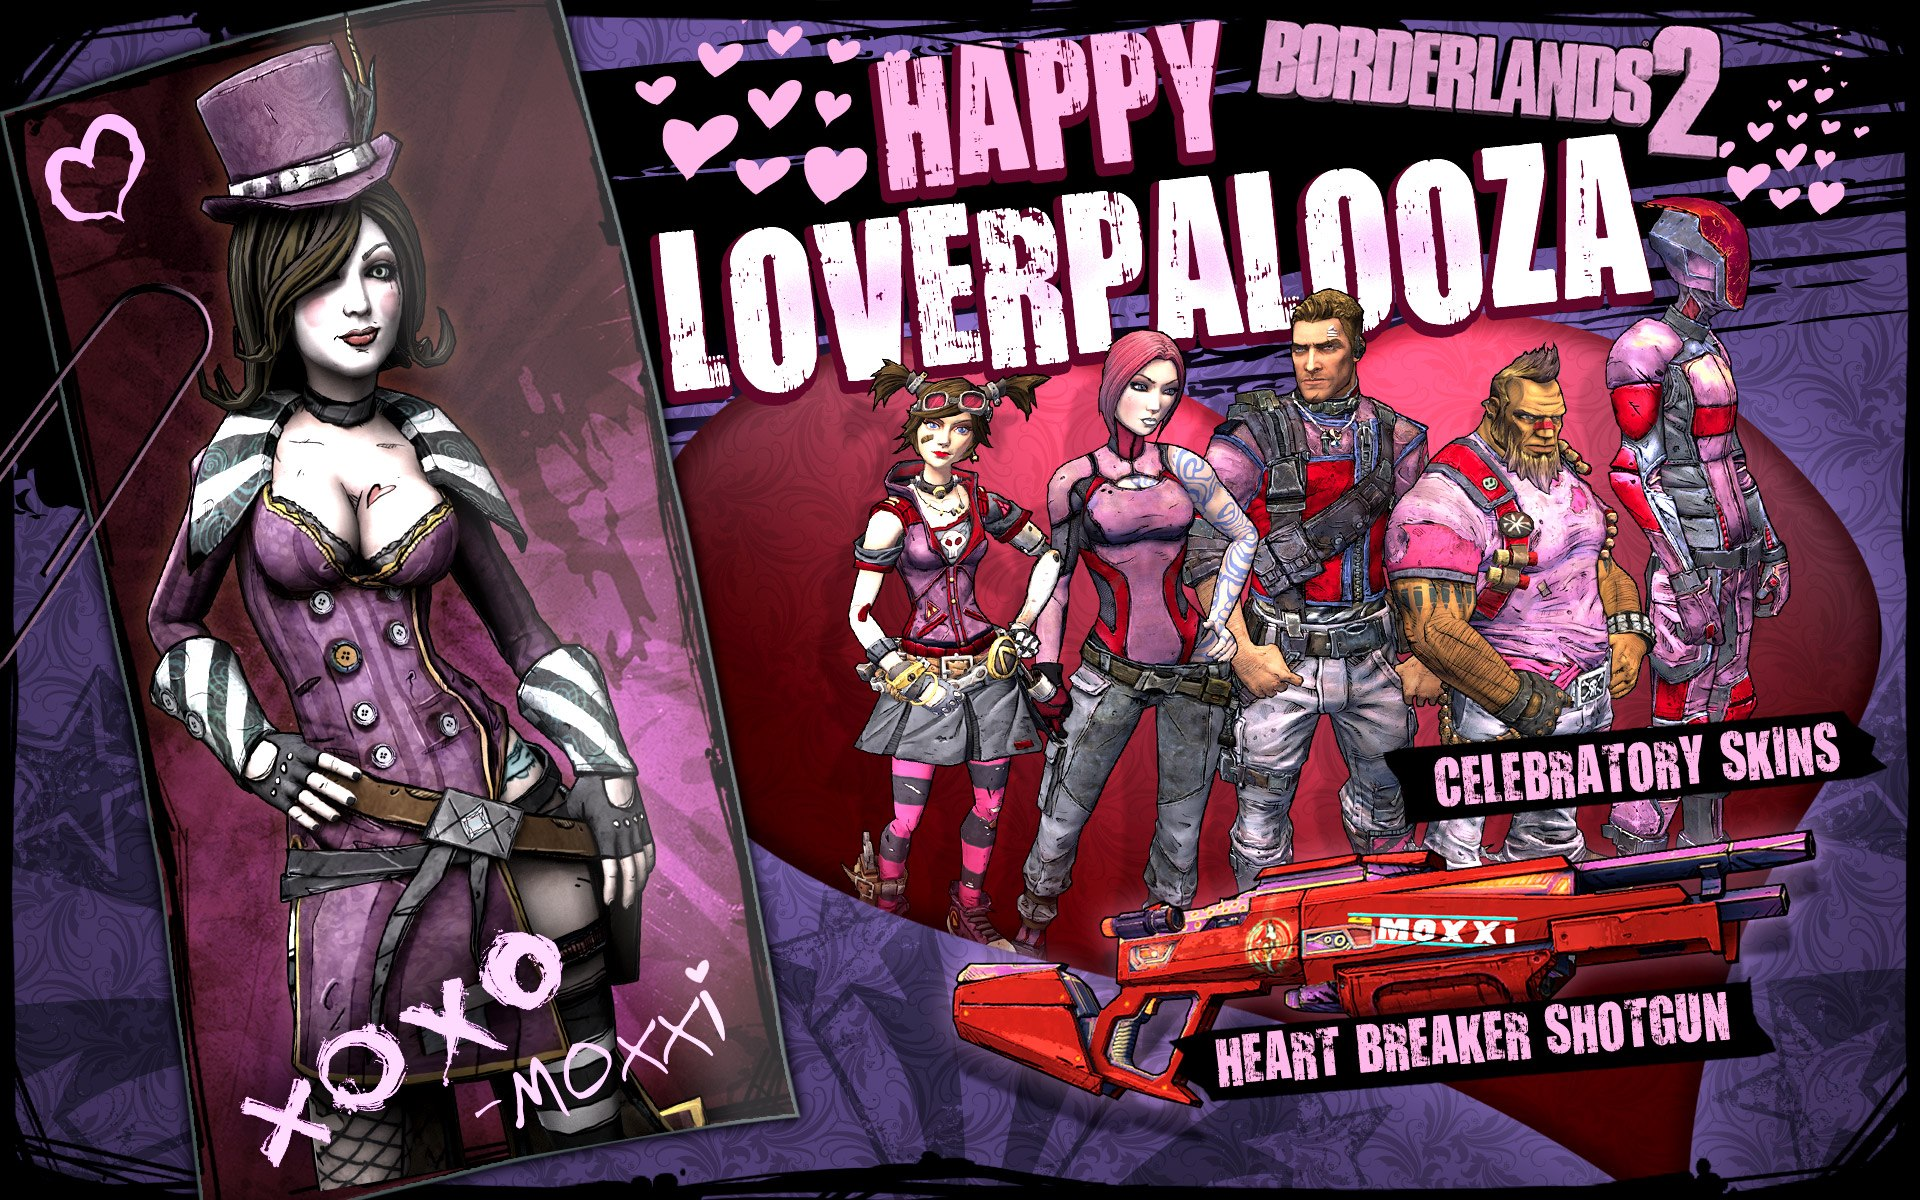 Happy 'V' Day – Moxxi Sends Her Love!